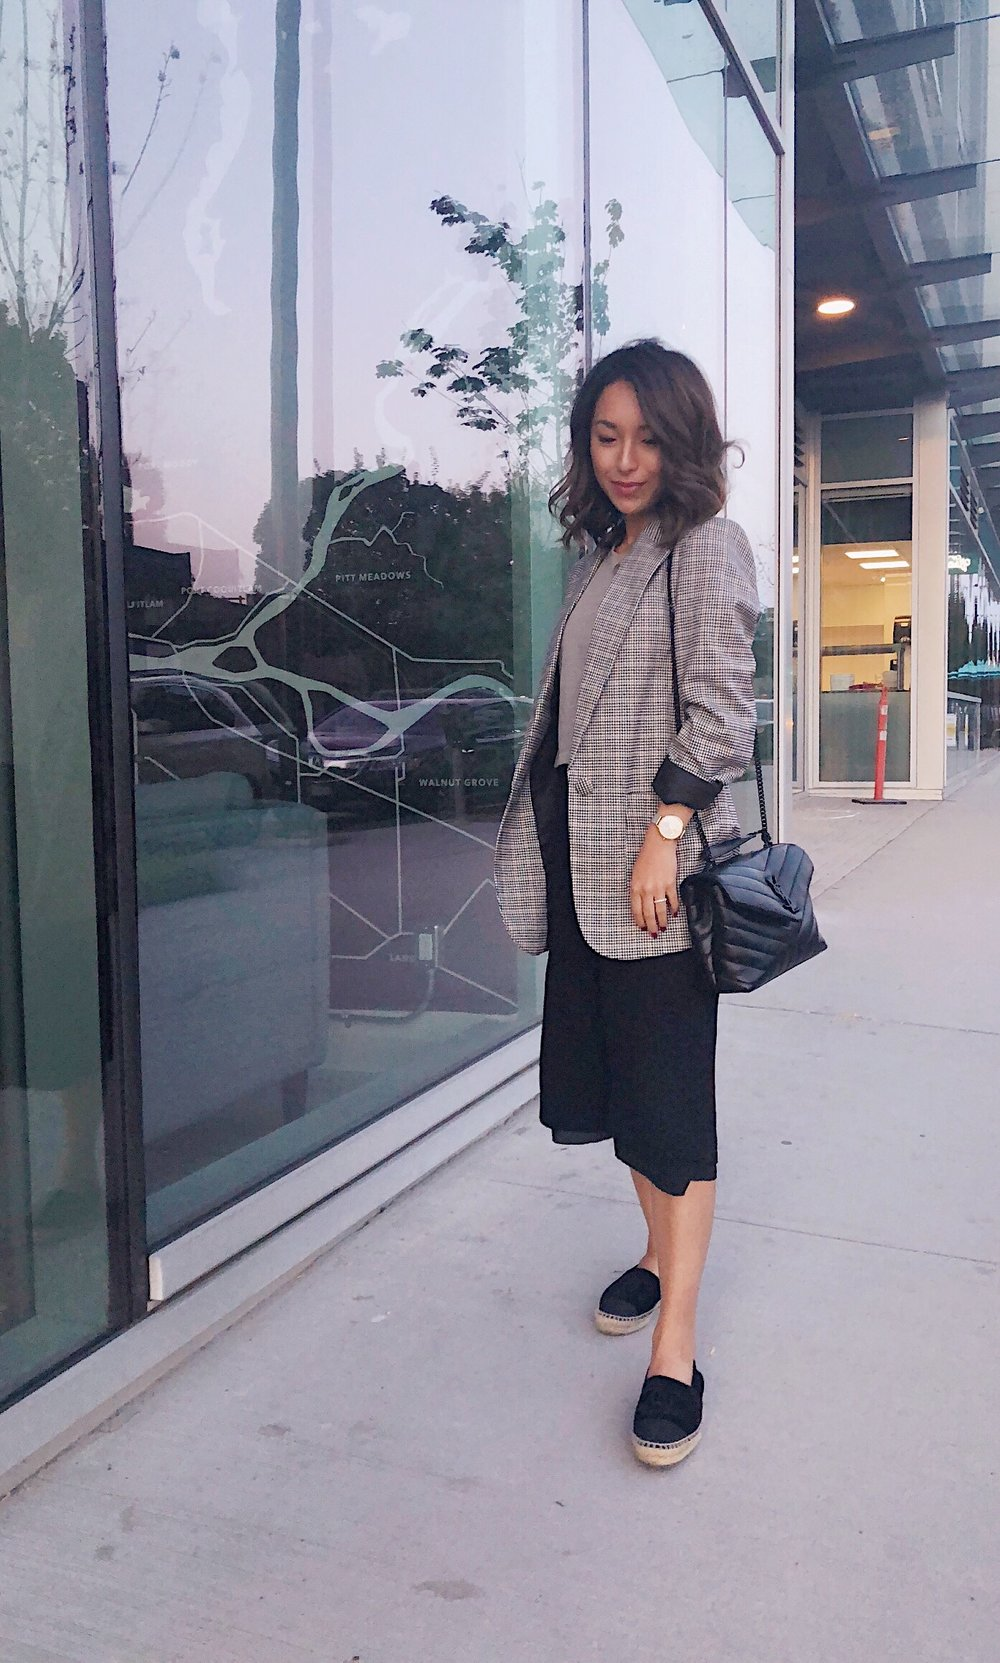 Workday style wearing Vera Moda menswear inspired blazer, Aritizia pants, Chanel espadrilles and YSL bag.